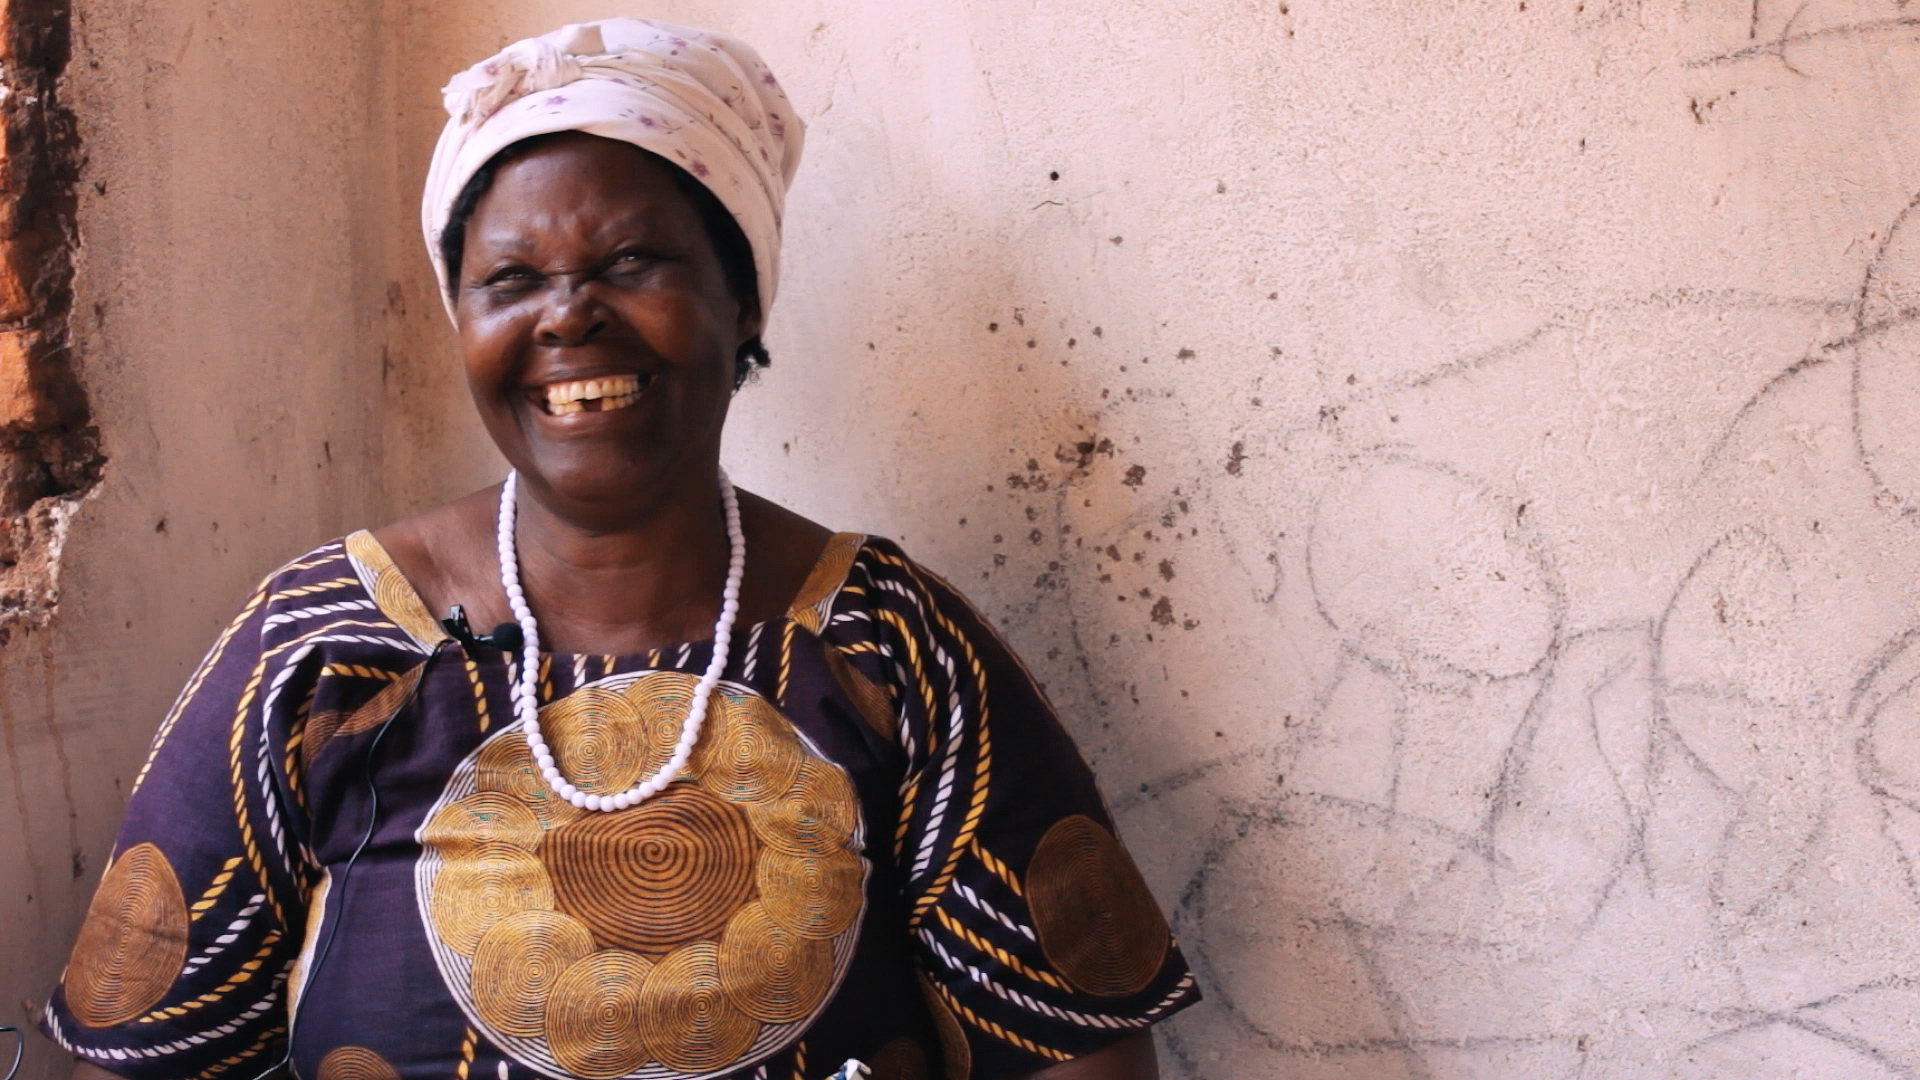 Working with communities in Malawi to address issues of poverty - Mbedza Projects Support